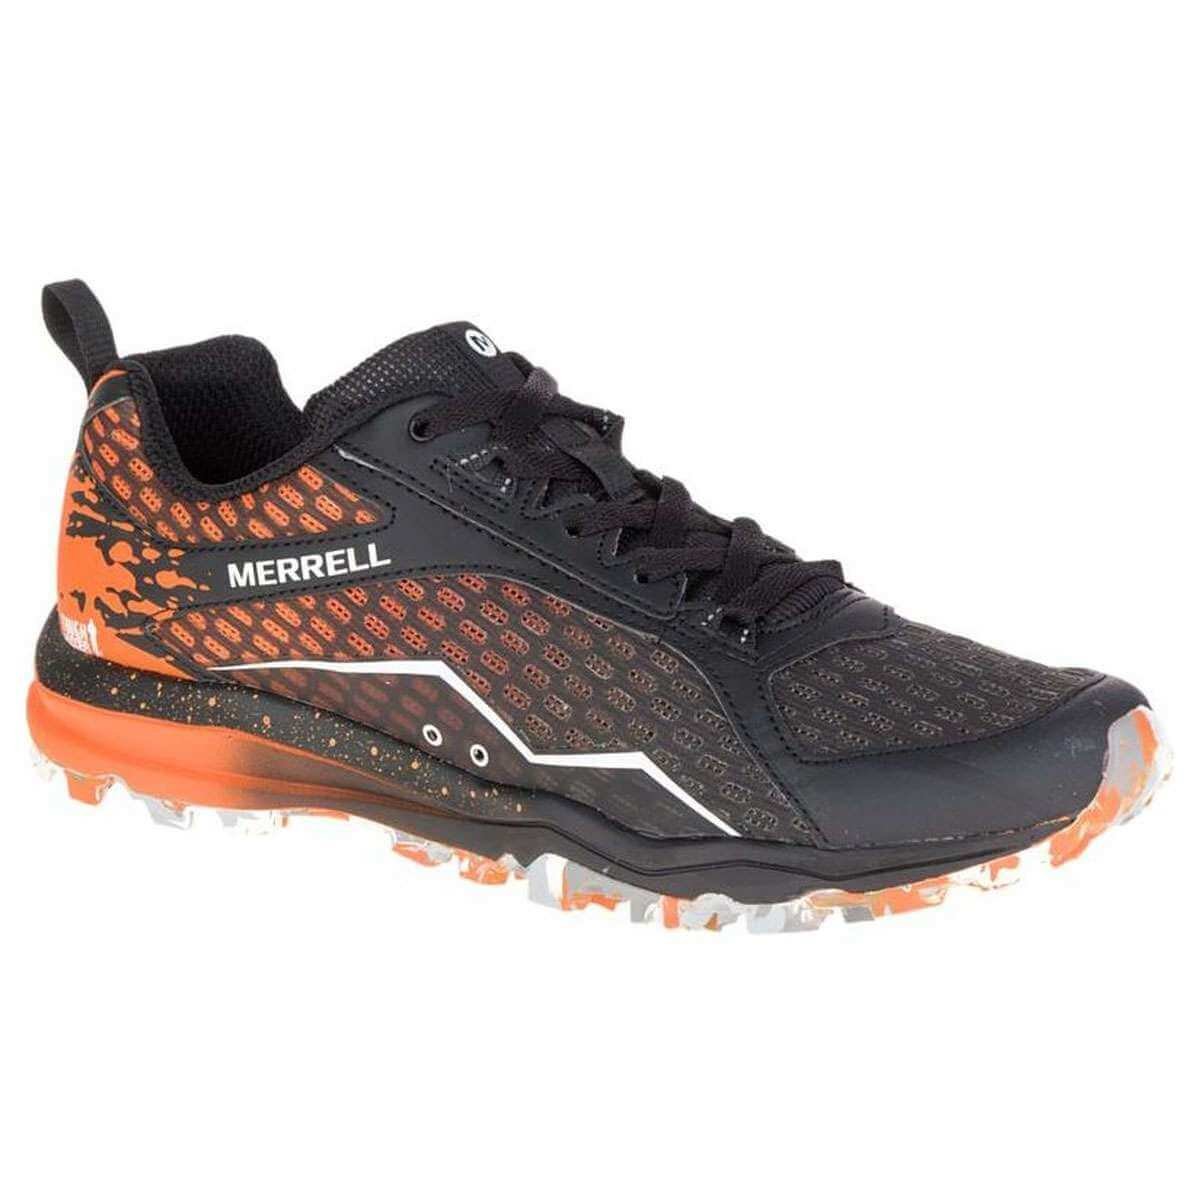 0758fab50cb94e Merrell All Out Crush Tough Mudder Trail Running Laufschuhe orange online  kaufen